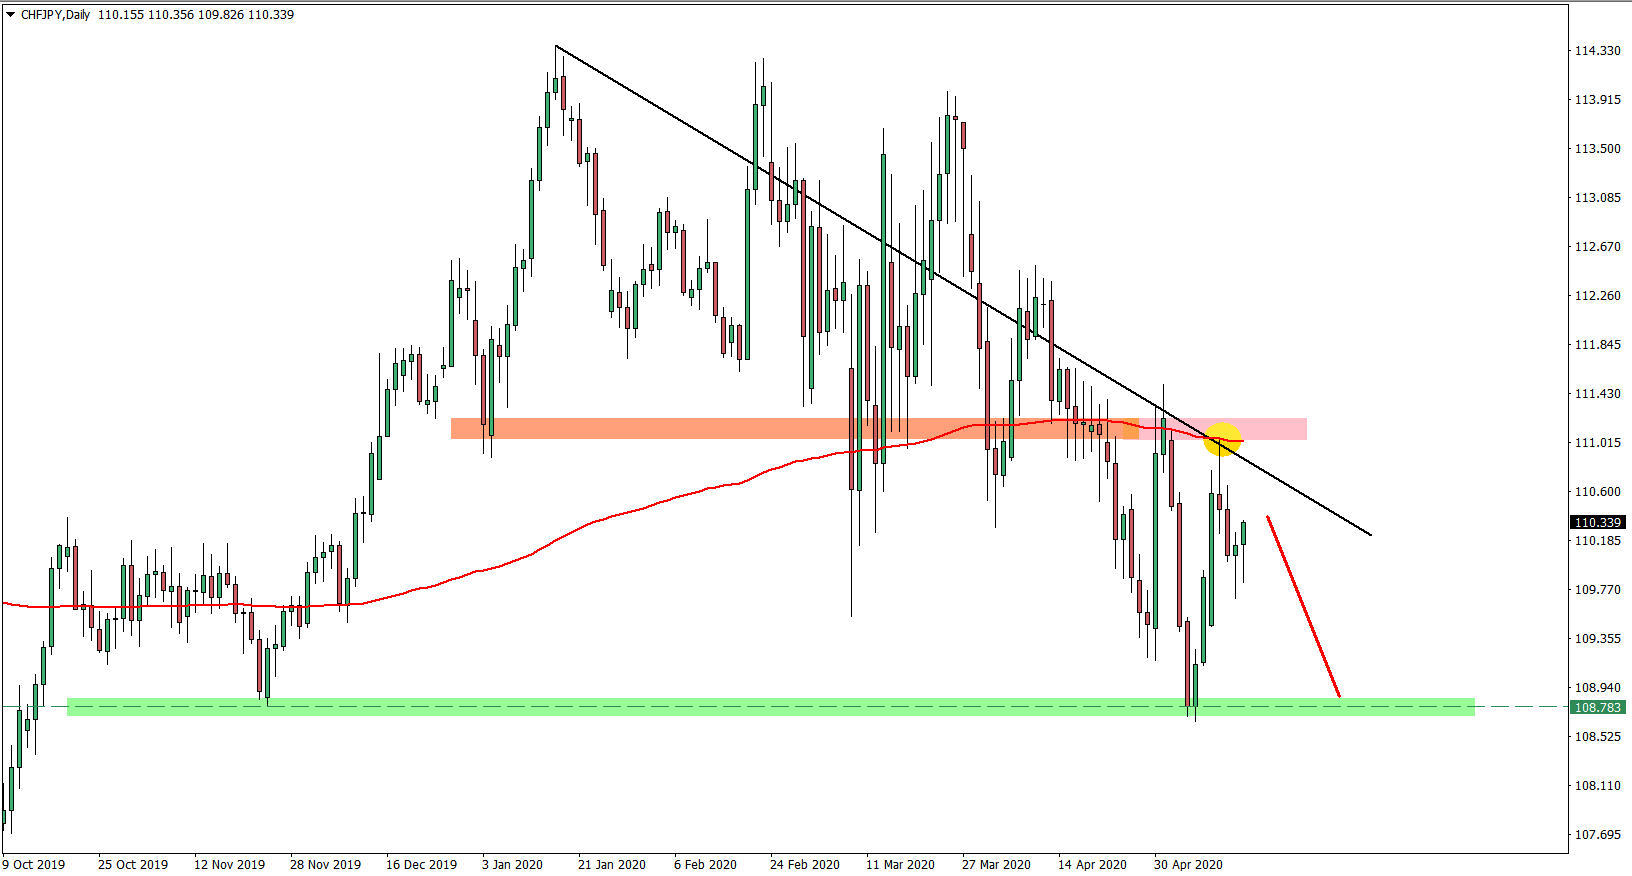 CHFJPY Daily Chart May 15th 2020